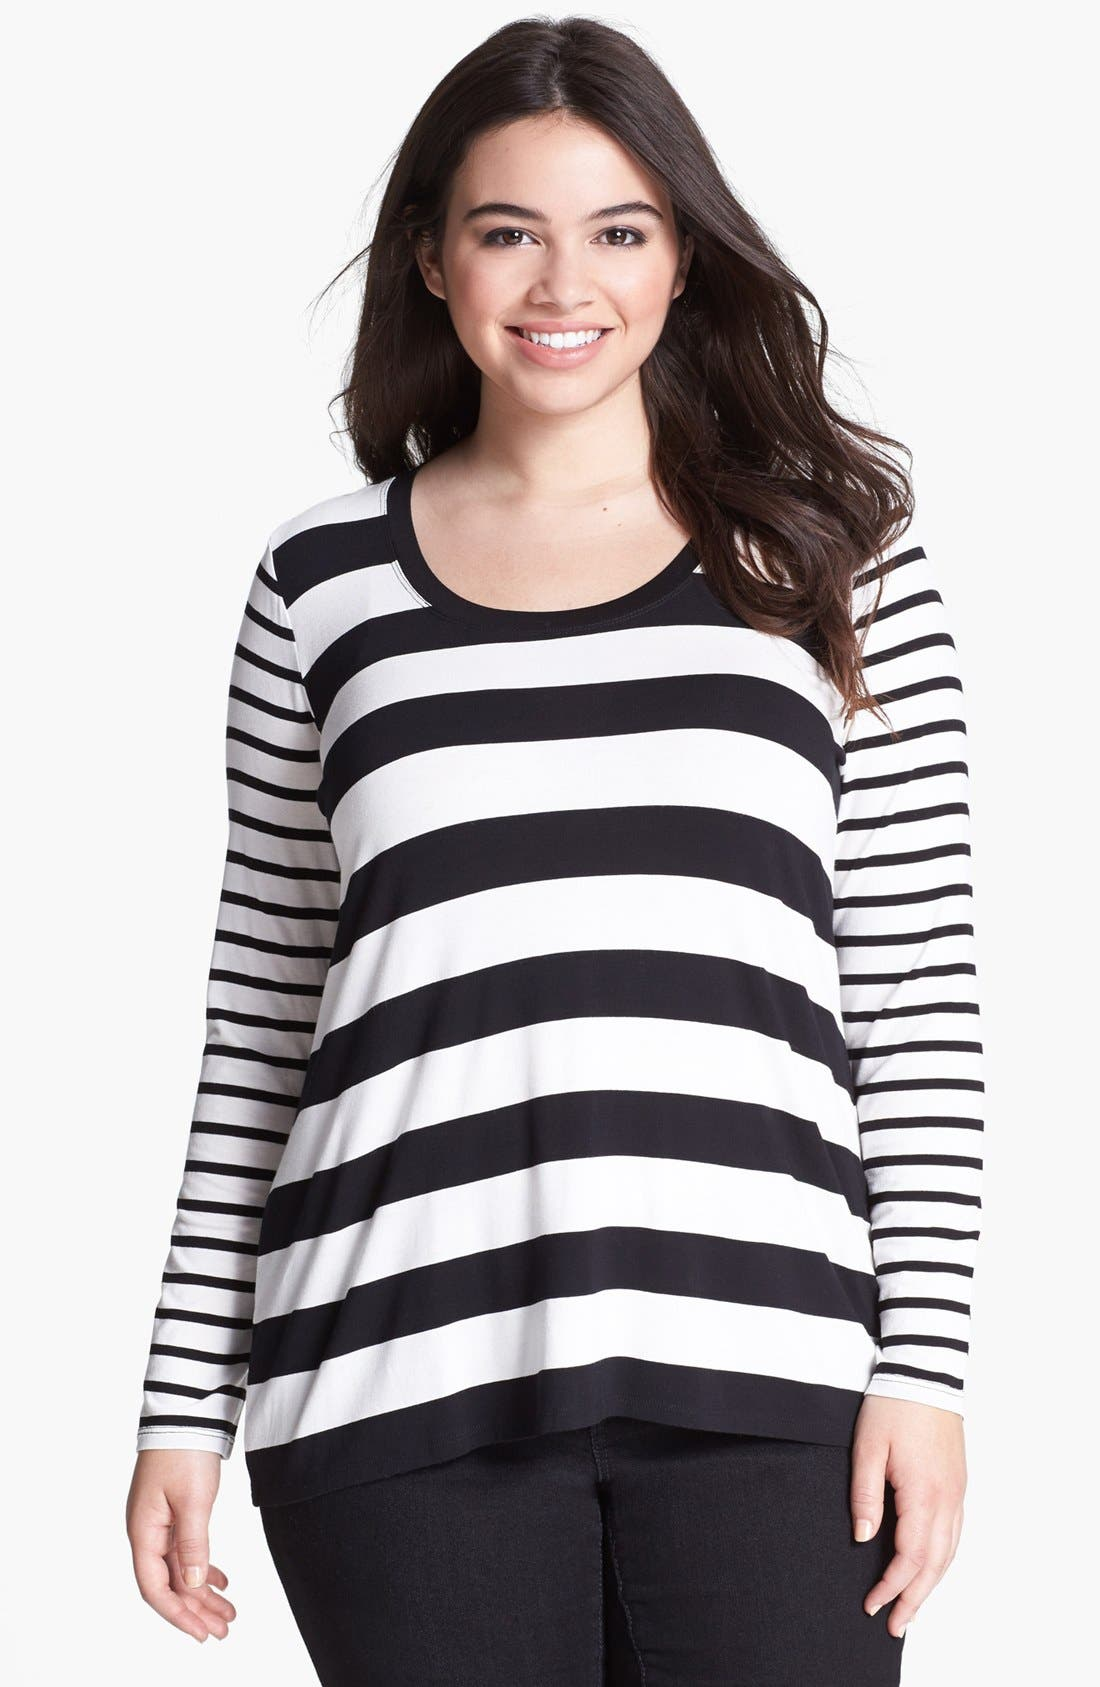 Alternate Image 1 Selected - Two by Vince Camuto Mix Stripe Tee (Plus Size)